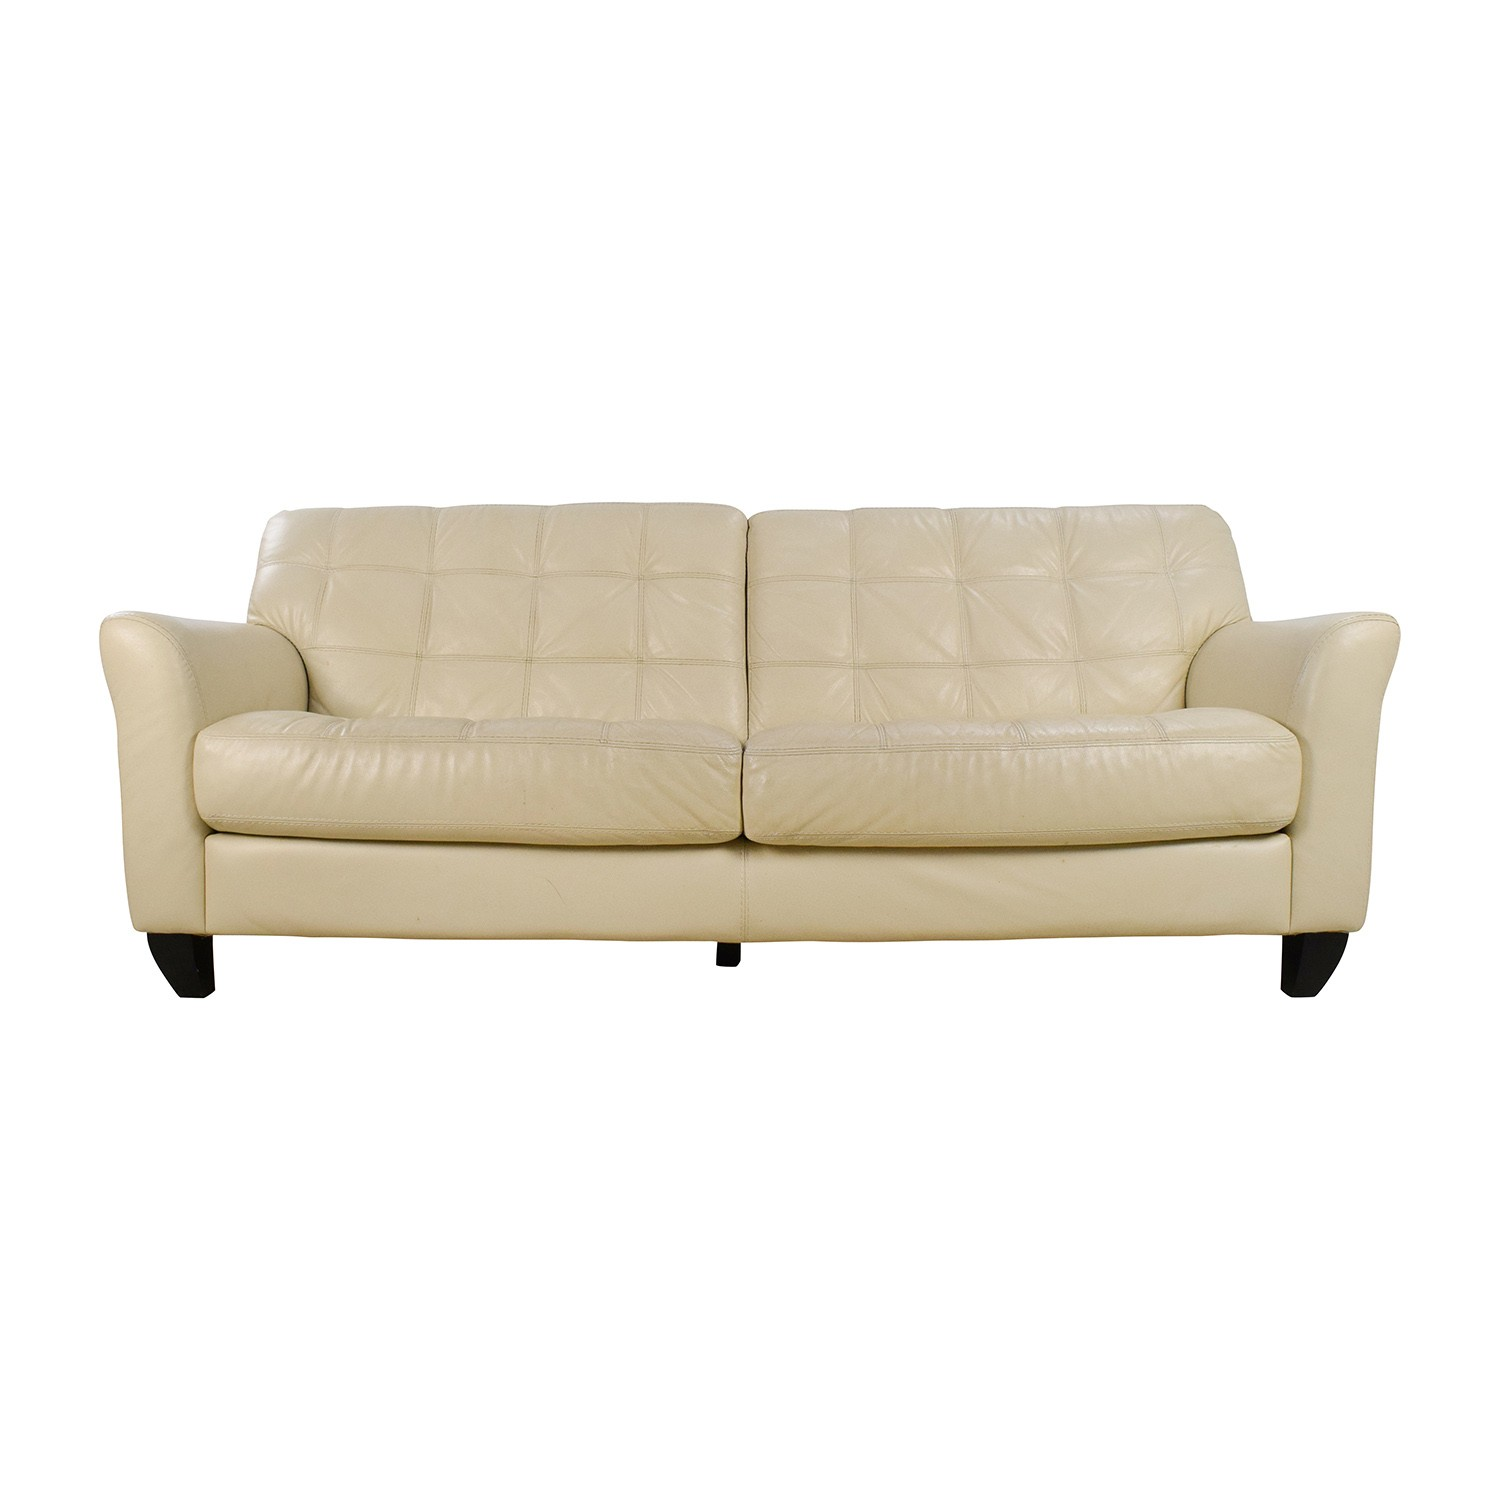 Sofas at Macy's Stunning Off Macys Macys Milan White Leather Couch sofas Online